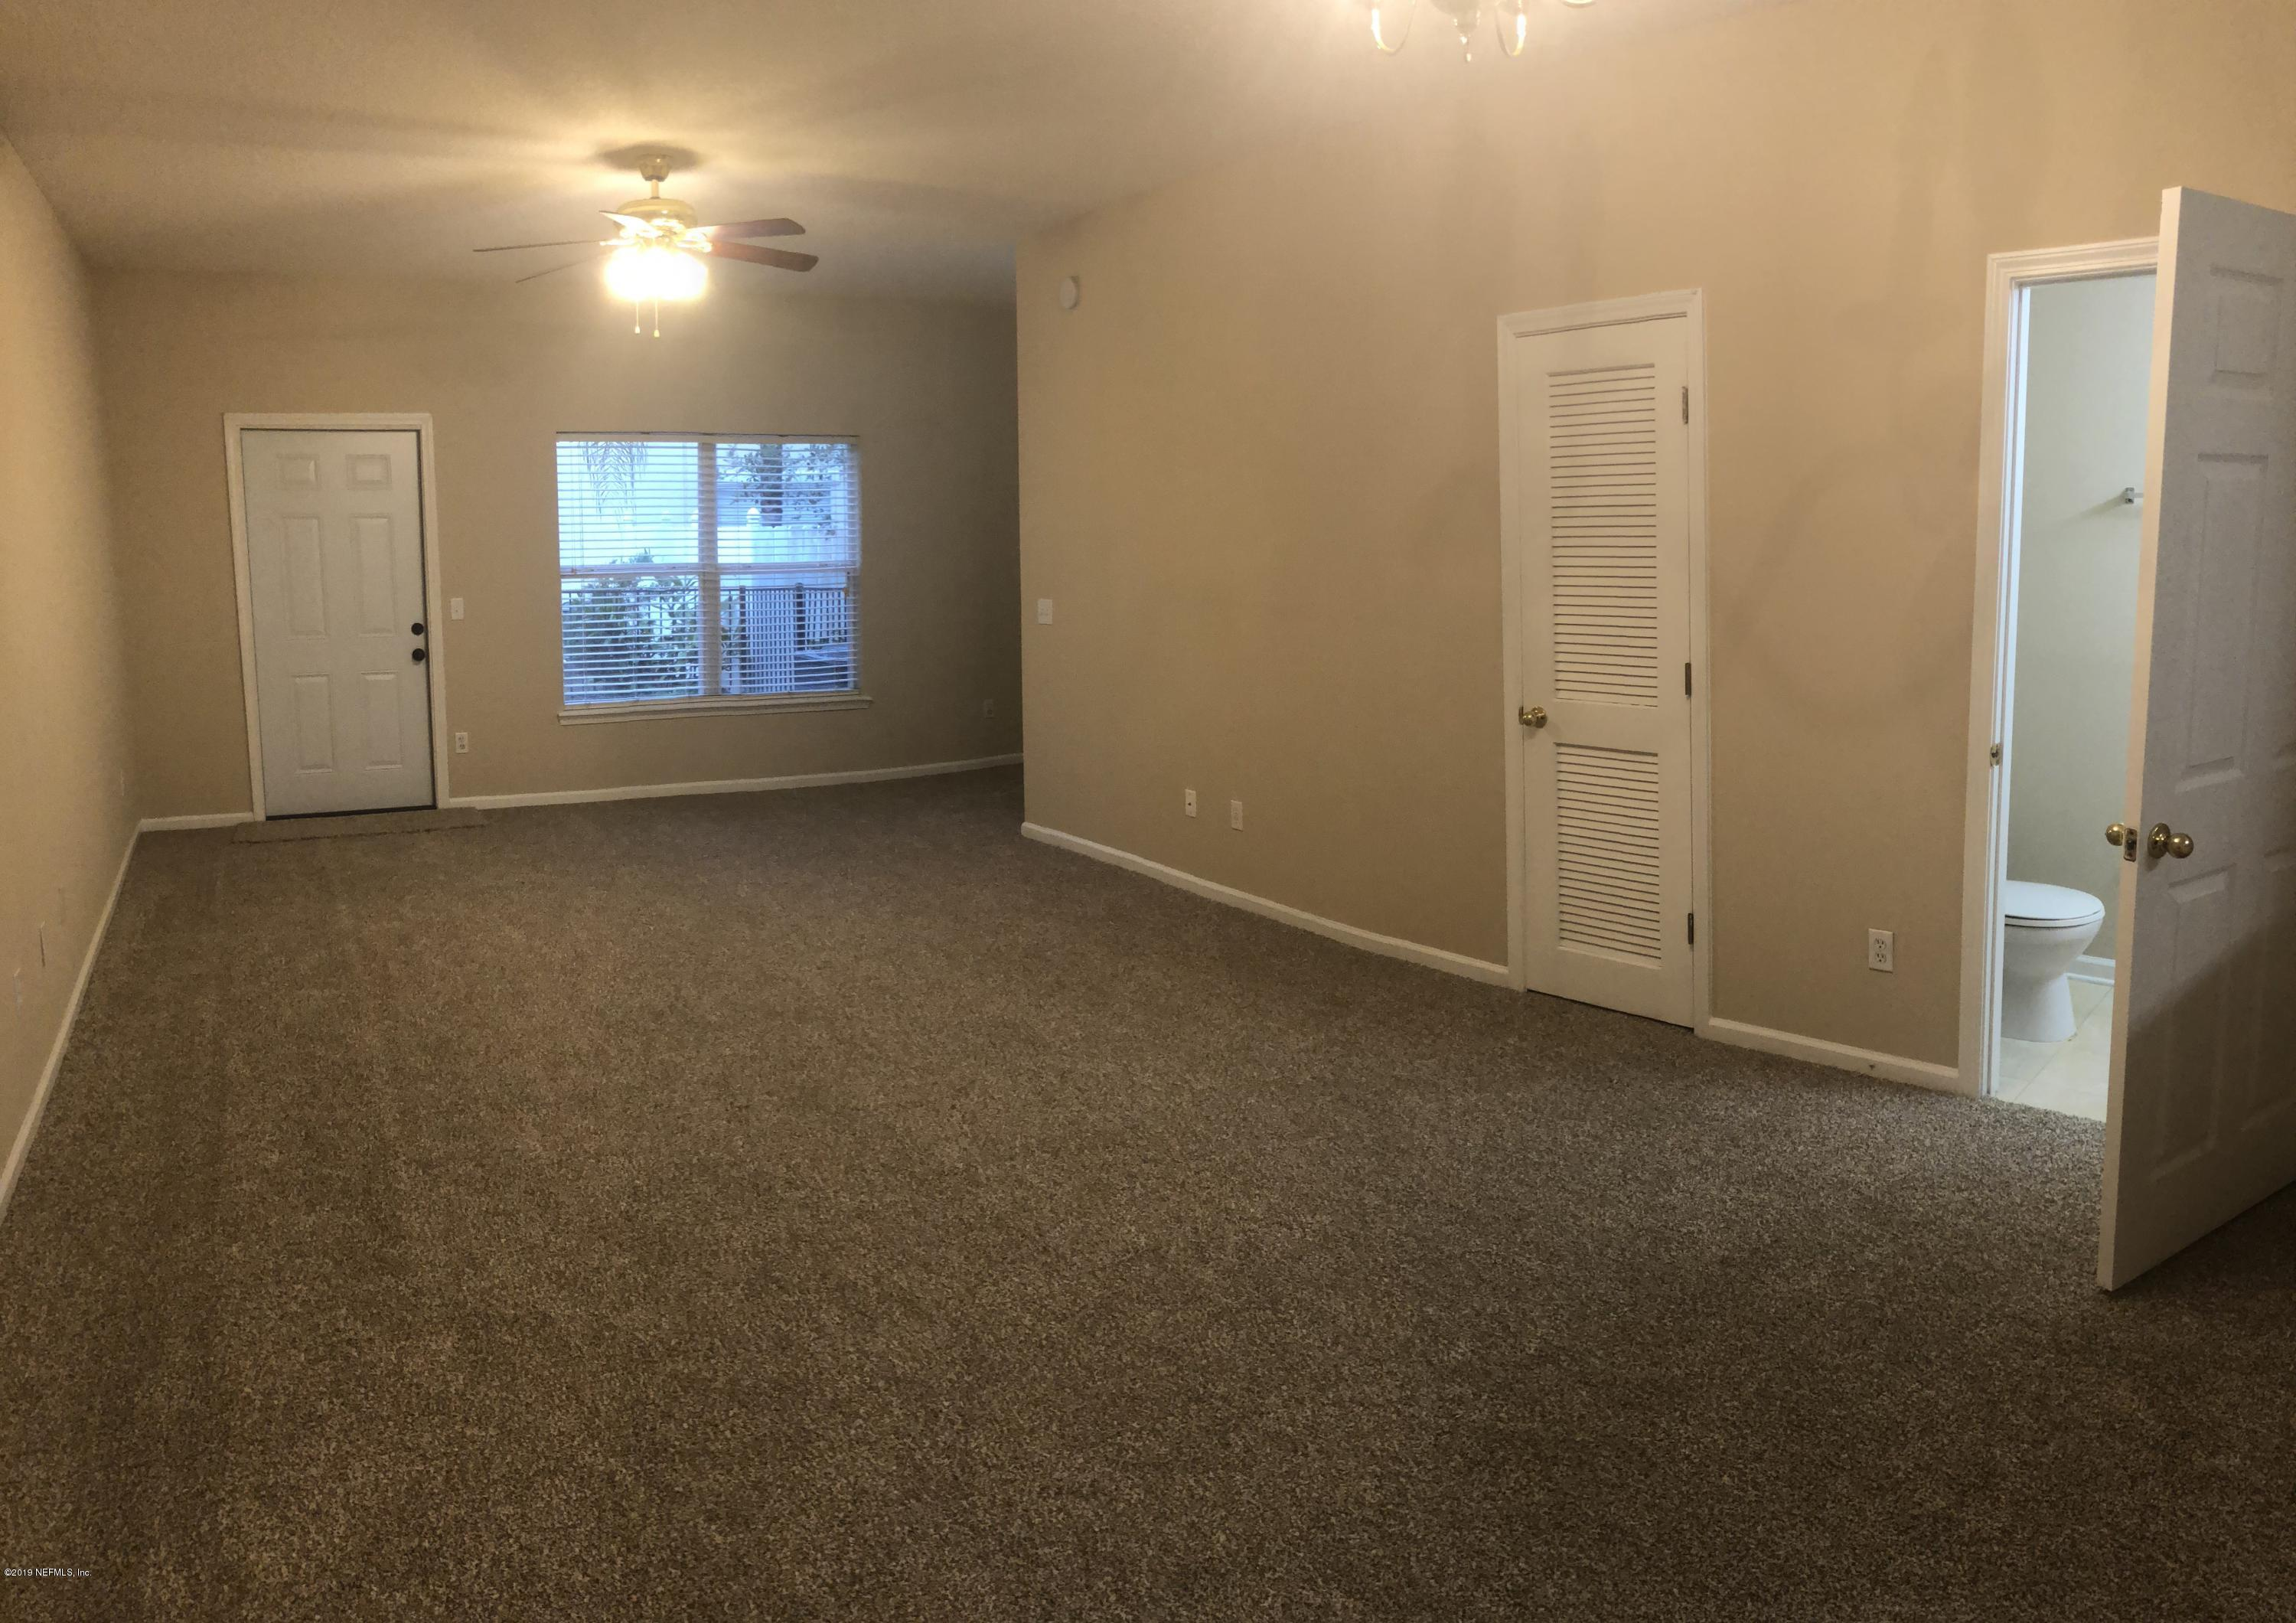 1011 SOUTH BANK, ST JOHNS, FLORIDA 32259, 3 Bedrooms Bedrooms, ,2 BathroomsBathrooms,Rental,For Rent,SOUTH BANK,1079899